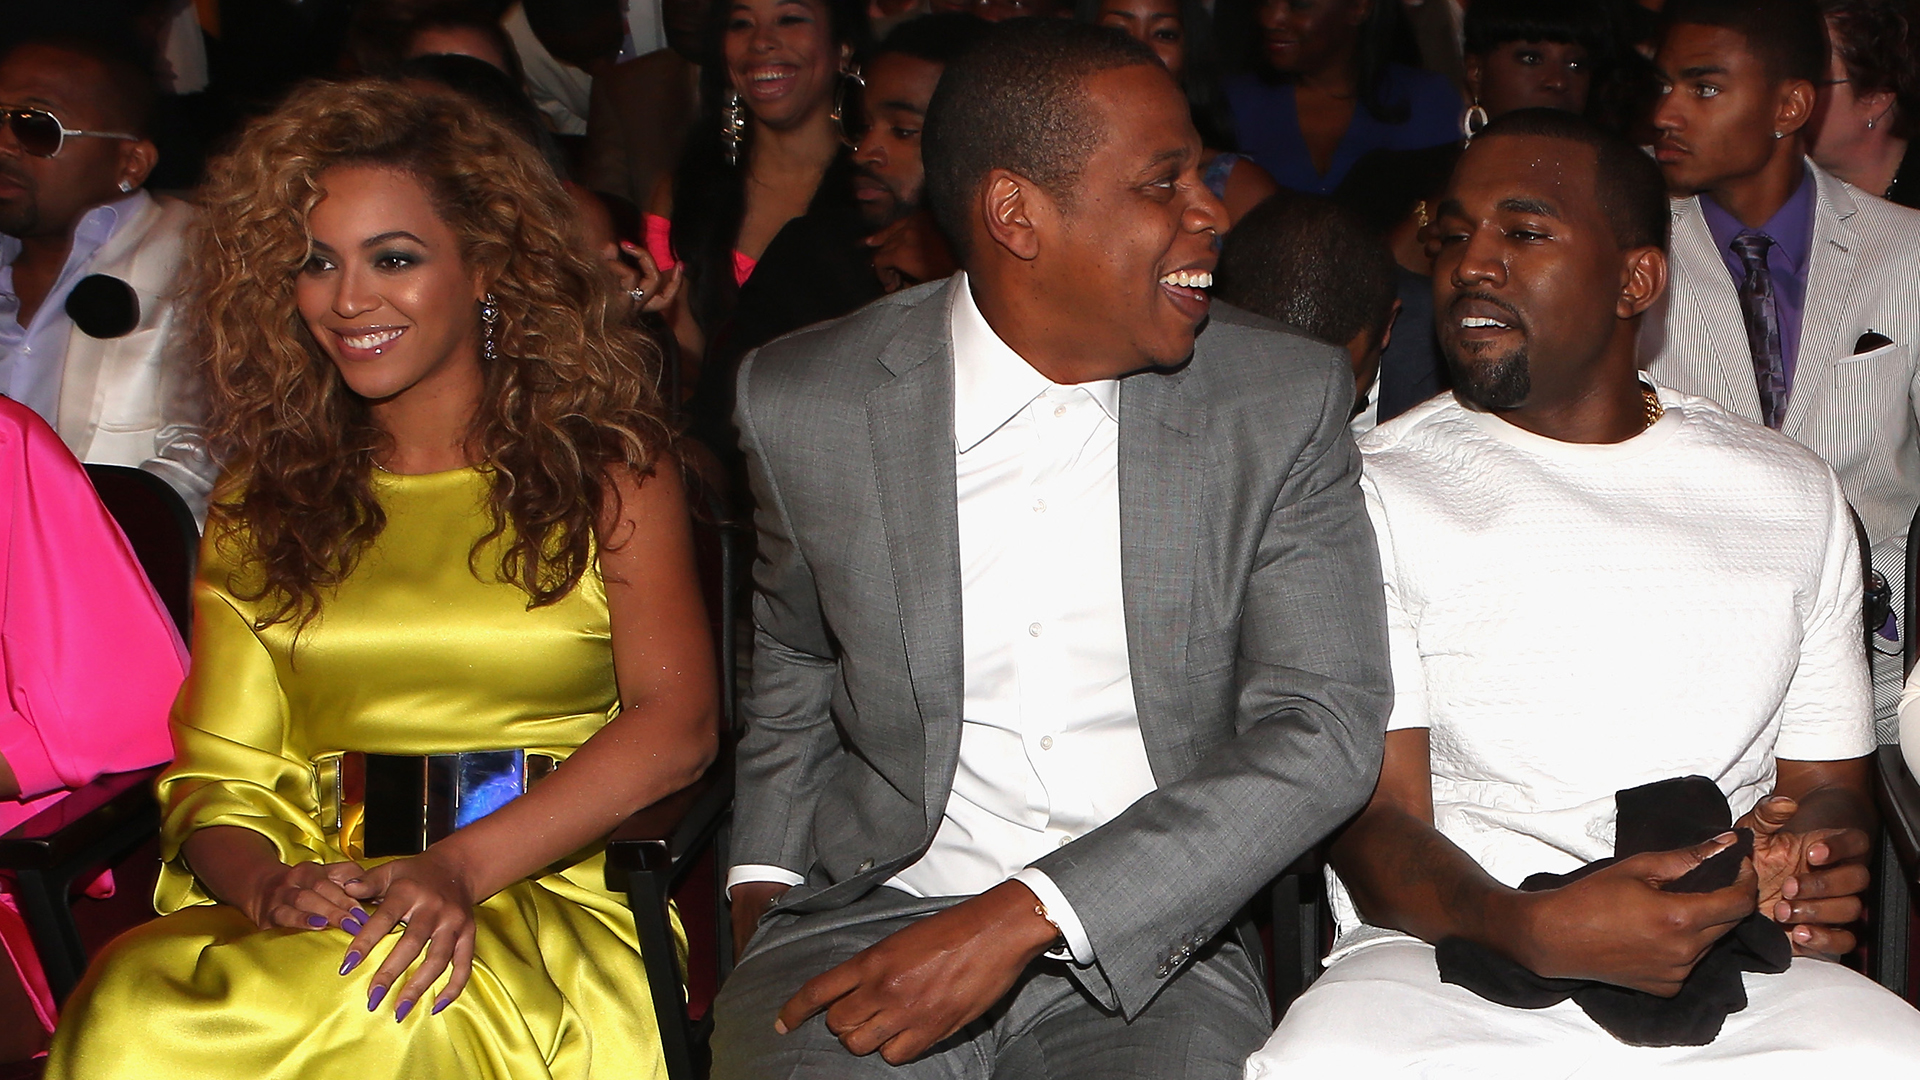 Jay-Z, Beyonce, and Kanye West